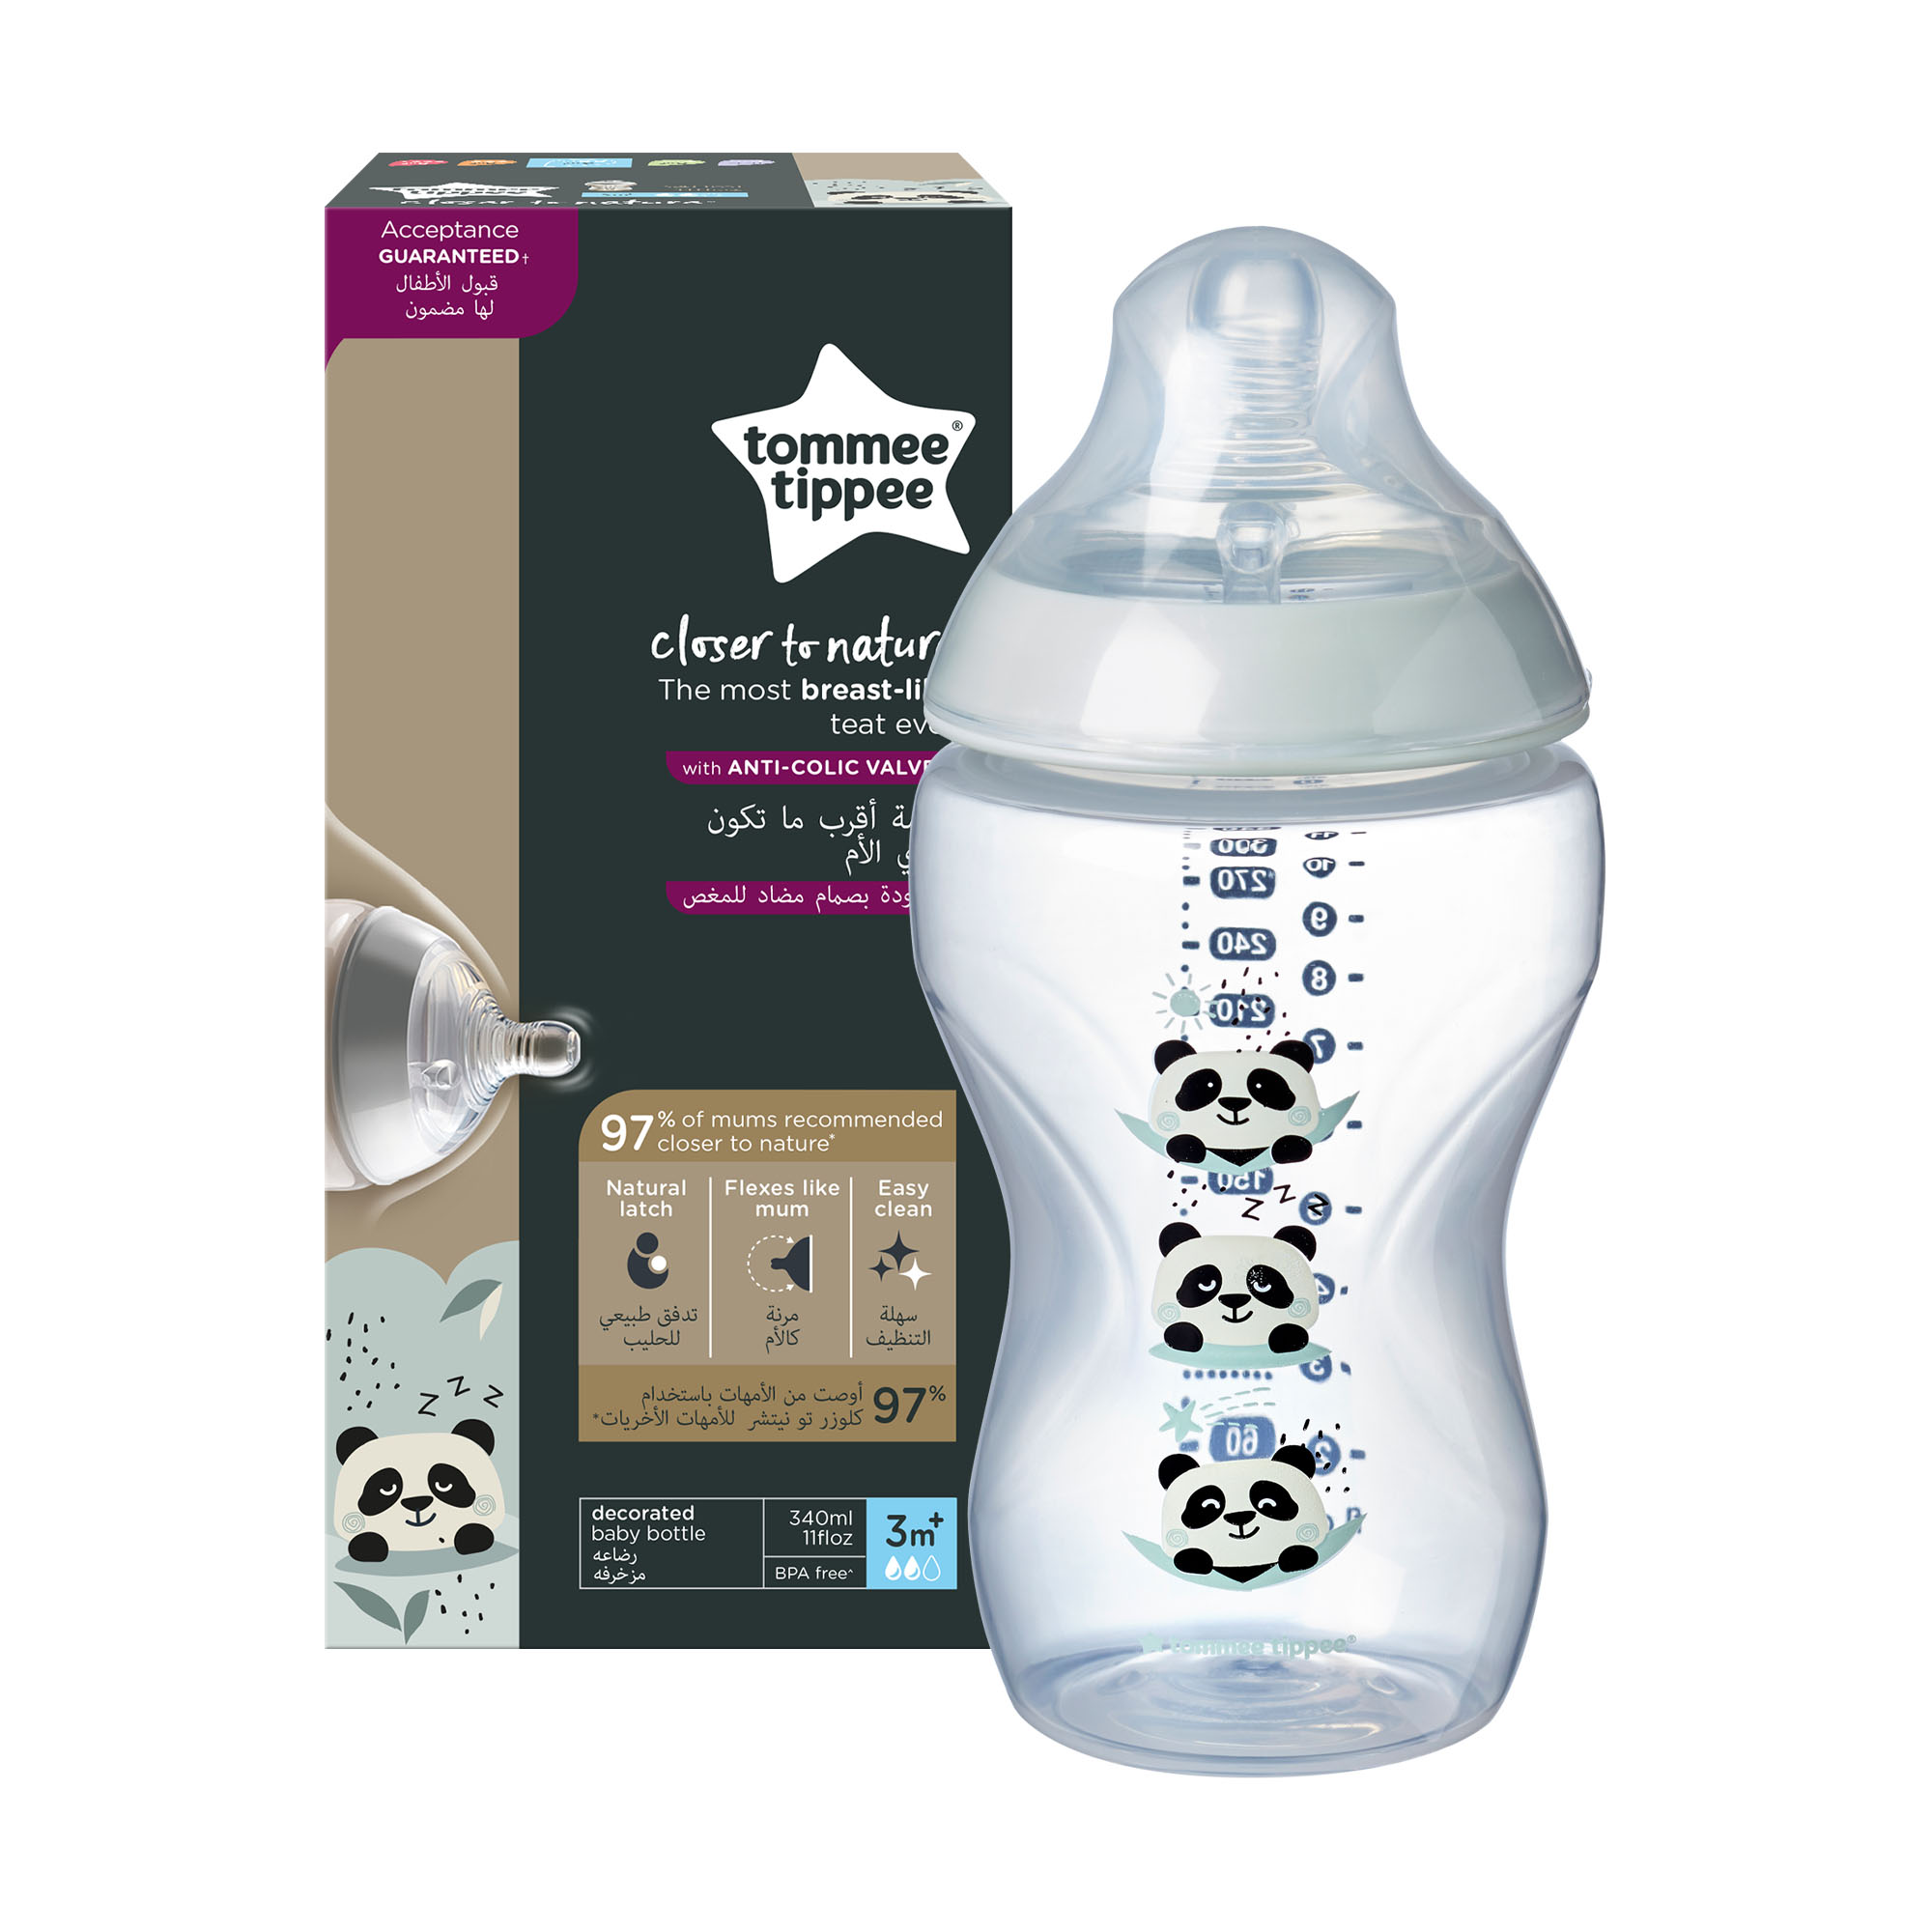 Biberon Tommee Tippee Closer to Nature, 340 ml, PP, Ursuleti Panda, 3 luni +, 1 buc